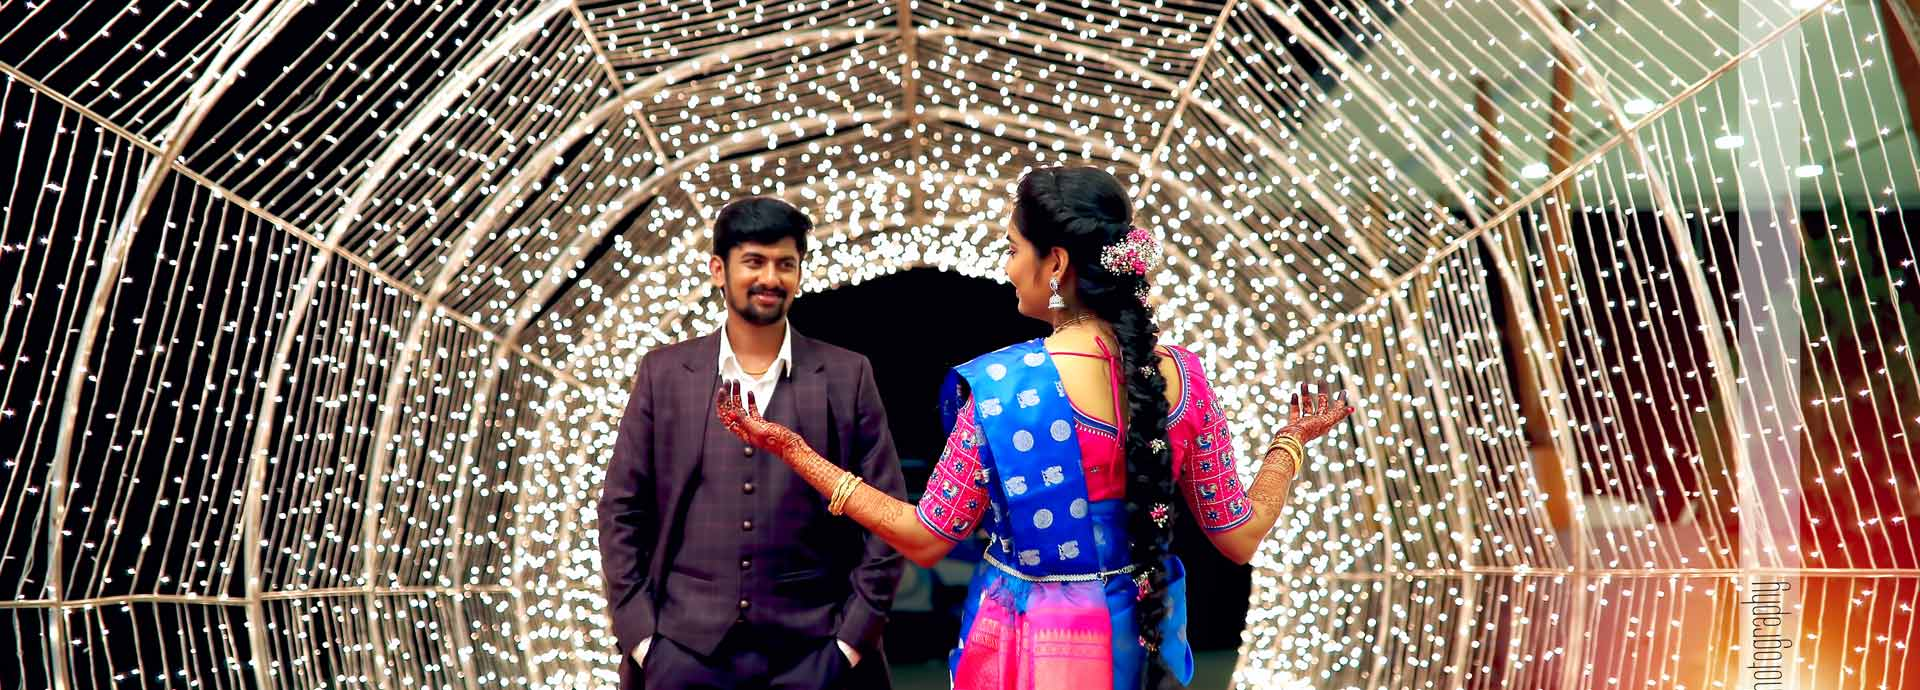 Engagement ceremony Live Streaming in Coimbatore